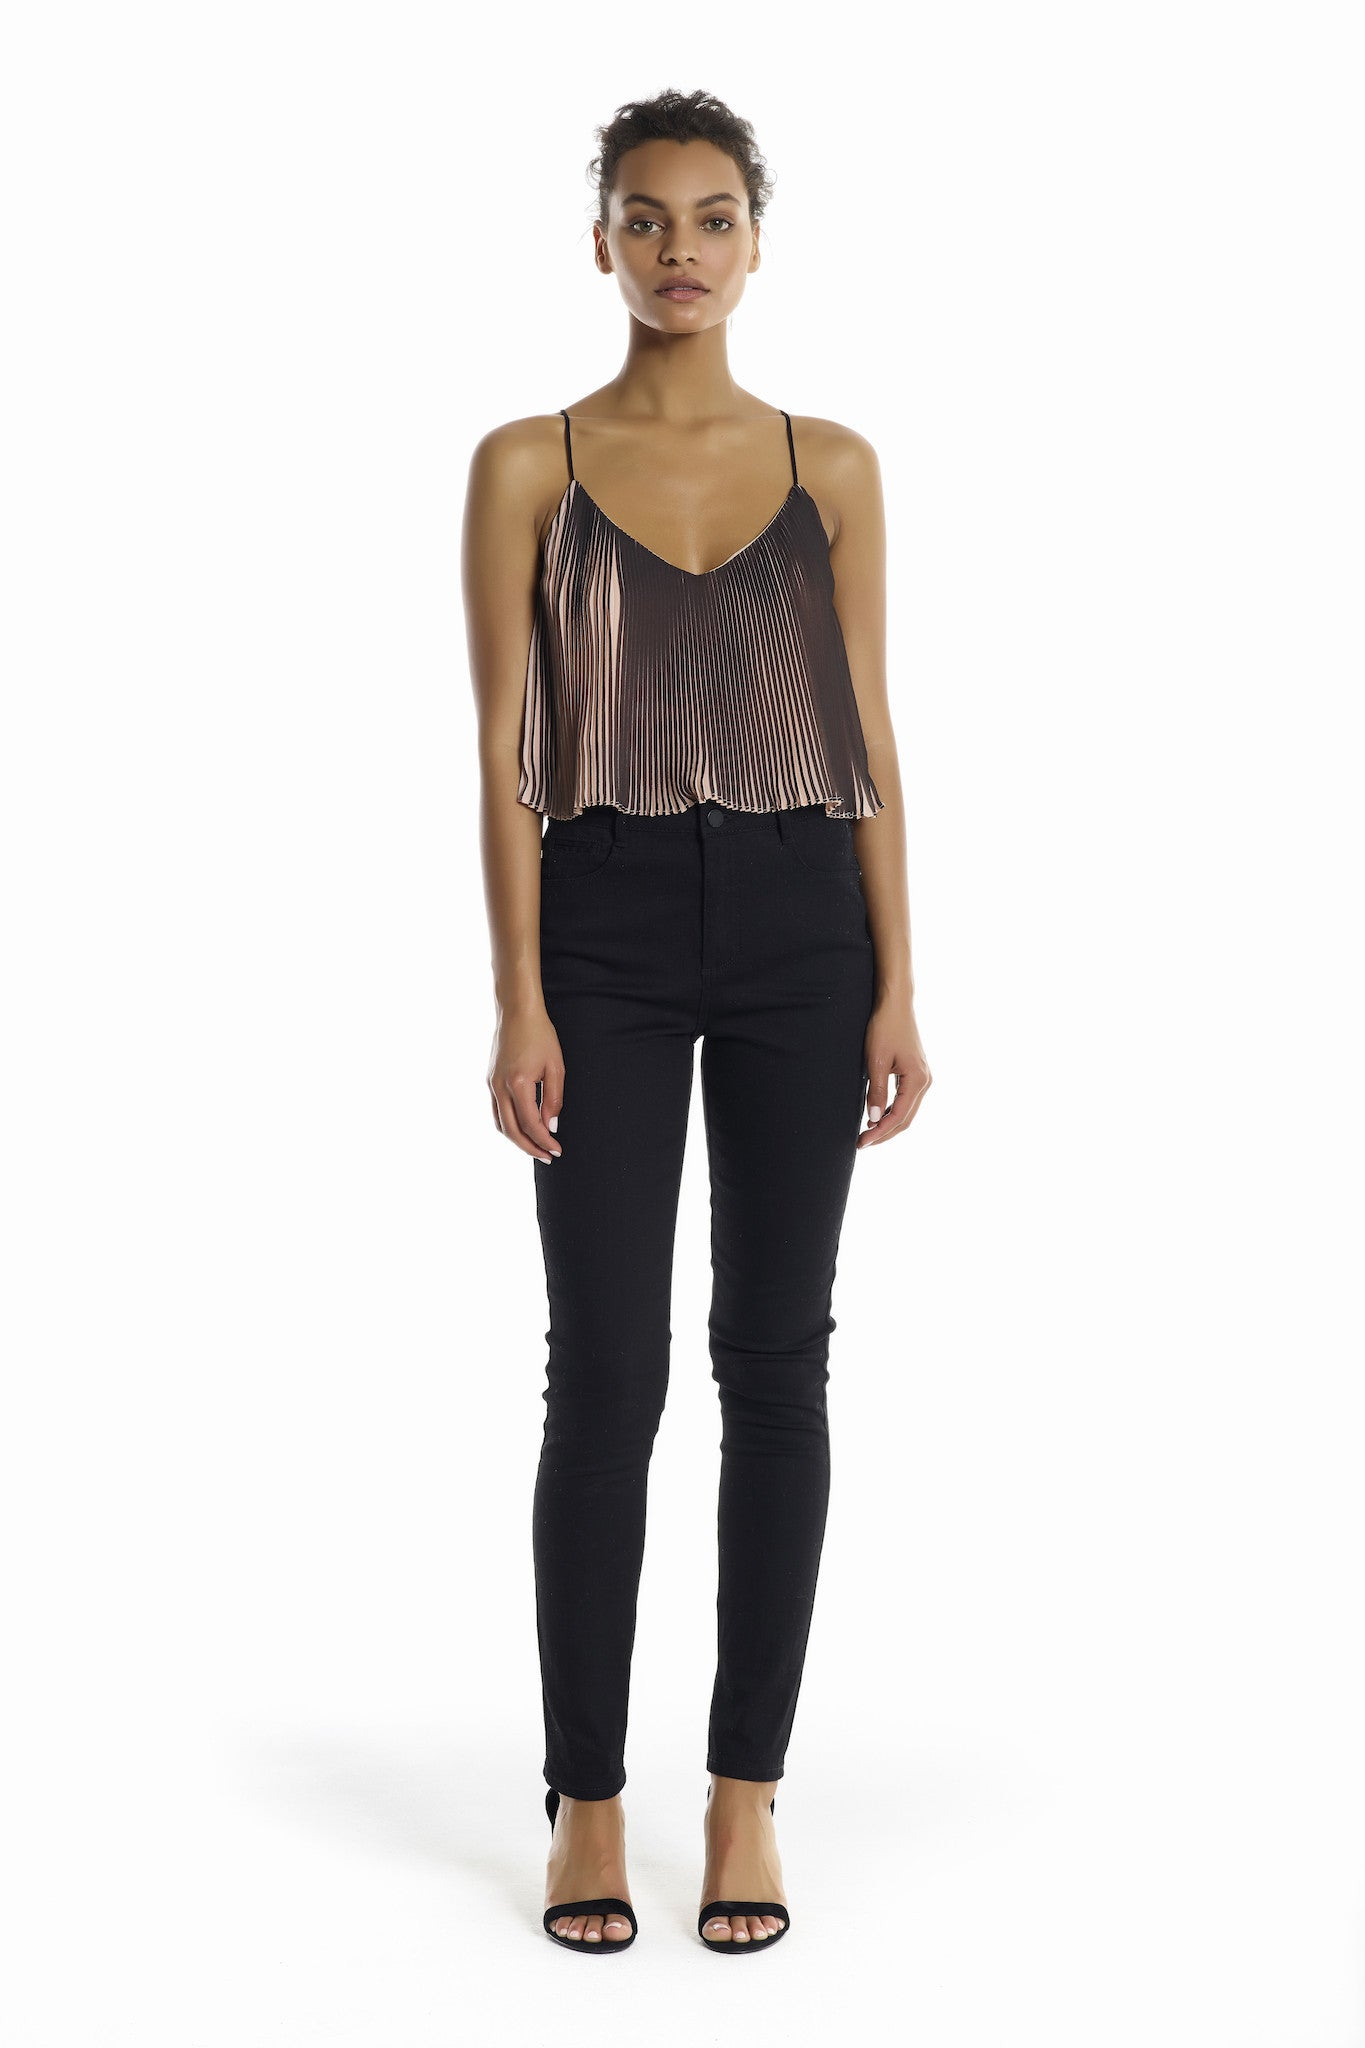 PLEATED TOP TOPS by KENDALL + KYLIE